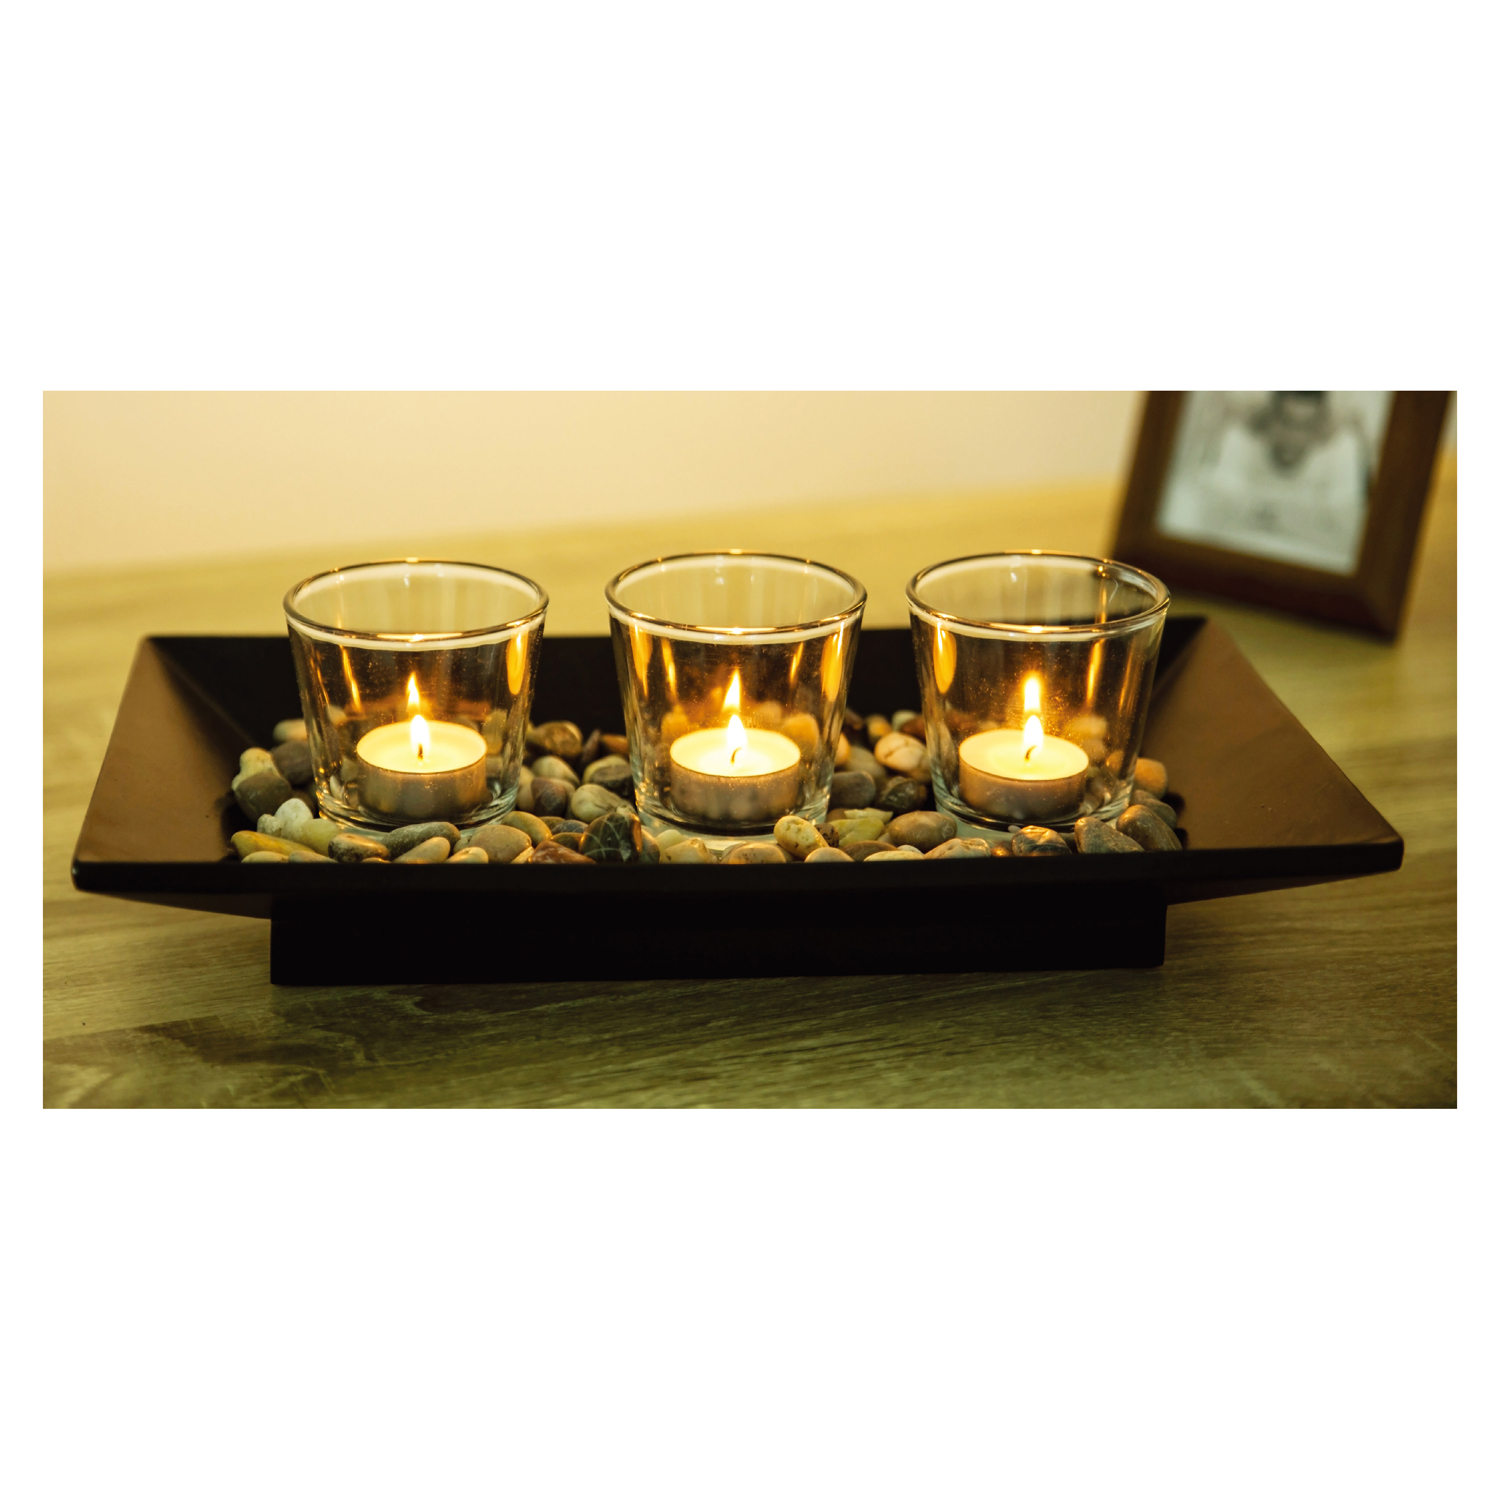 Home Decor Candle Holders And Accessories: Tranquil 3 Tealight Holders